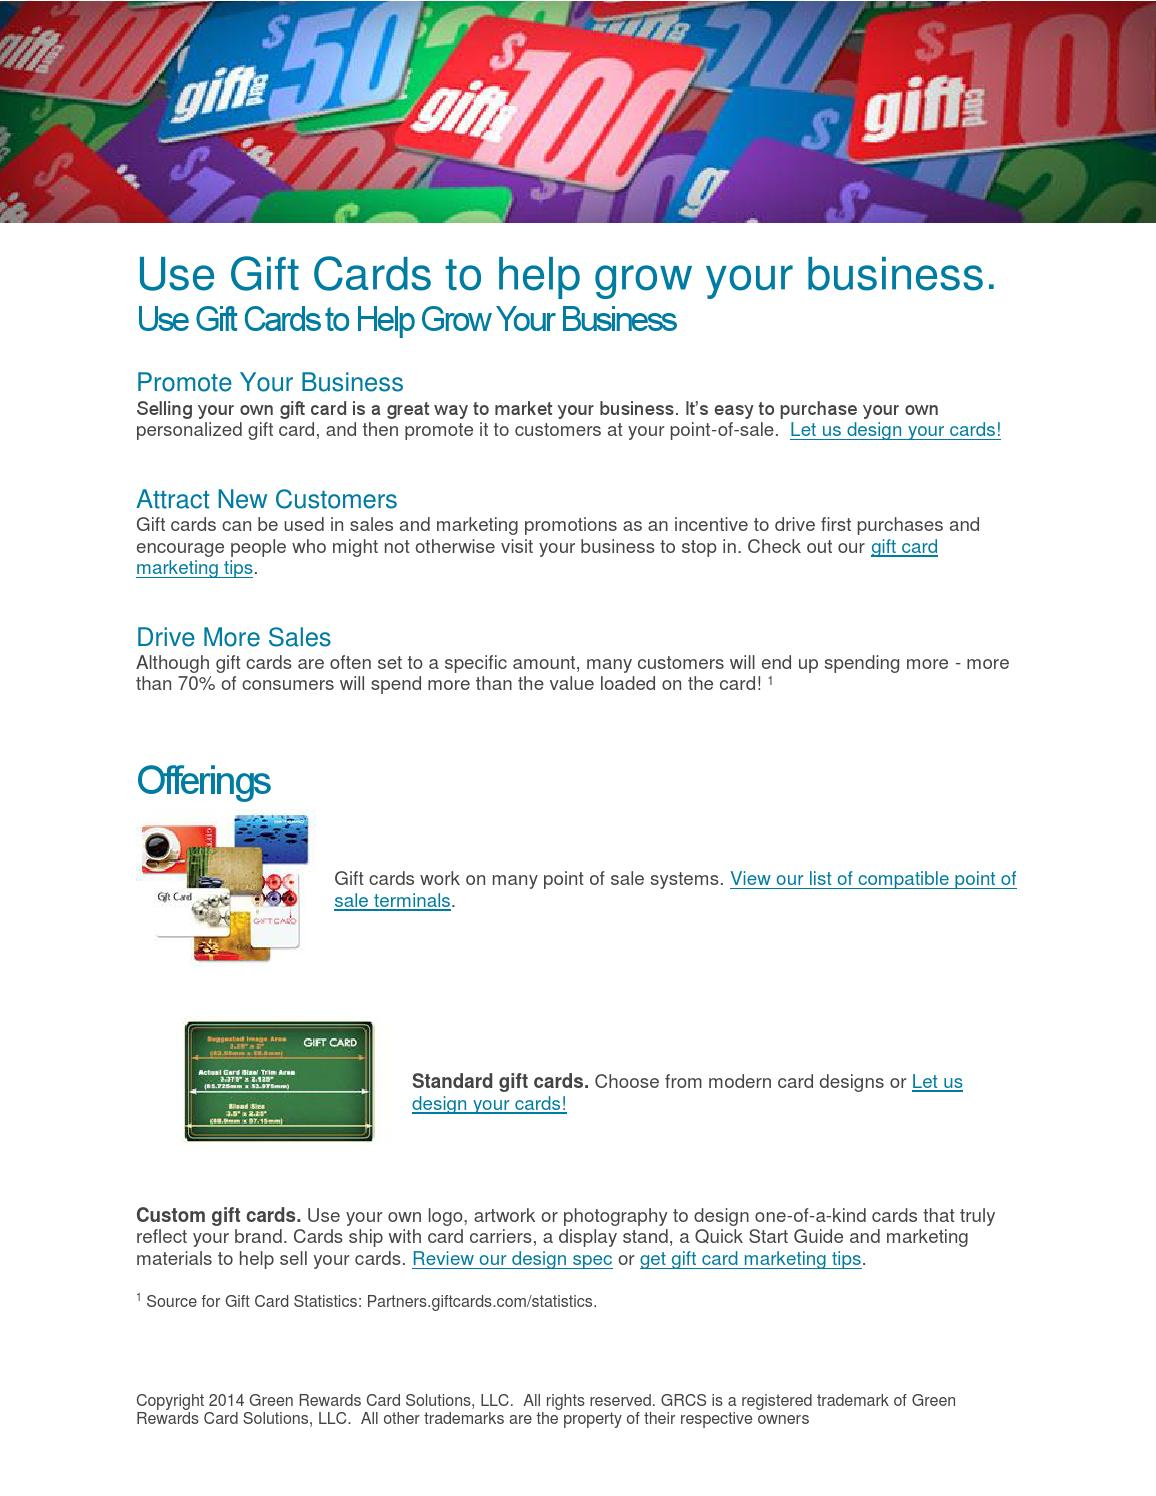 Use Gift Cards To Help Grow Your Business By Kookie Balenciaga